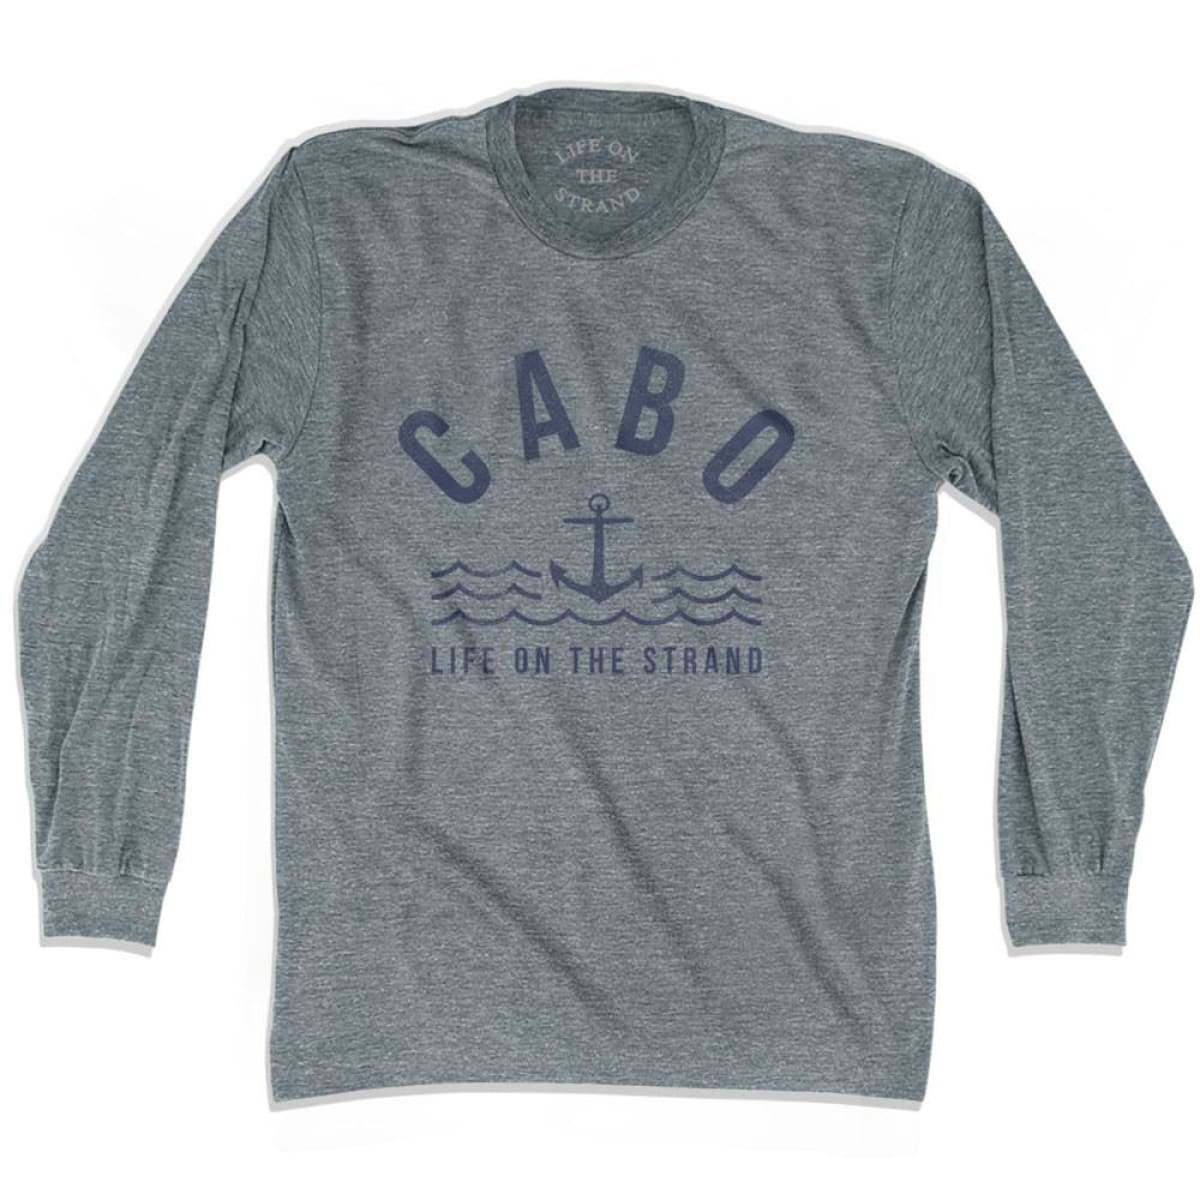 Cabo Anchor Life on the Strand Long Sleeve T-shirt - Athletic Grey / Adult X-Small - Life on the Strand Anchor